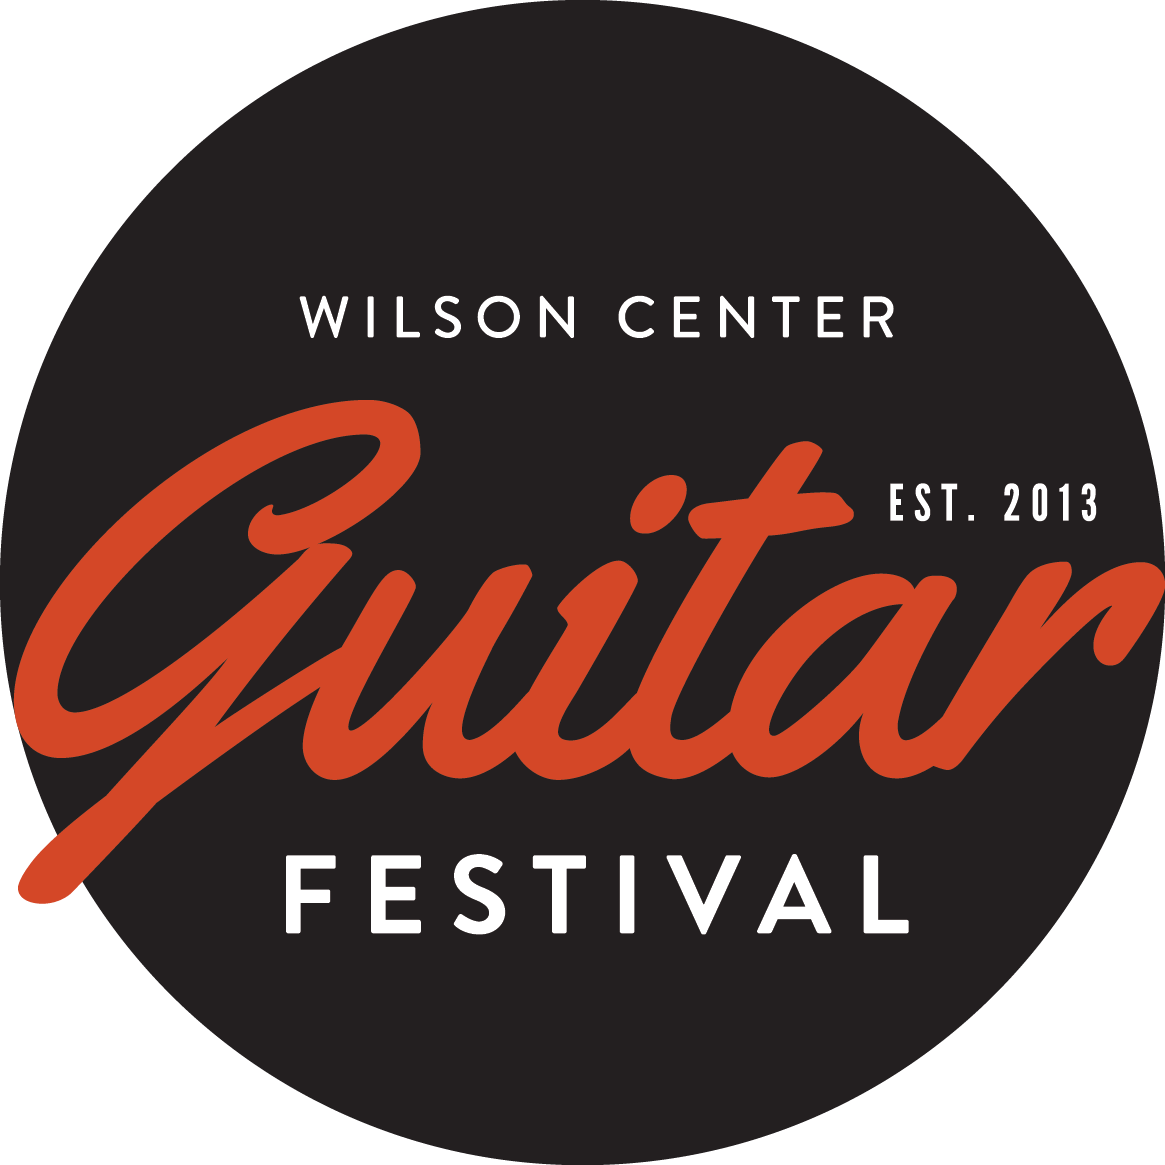 GuitarLogo-color-black.png